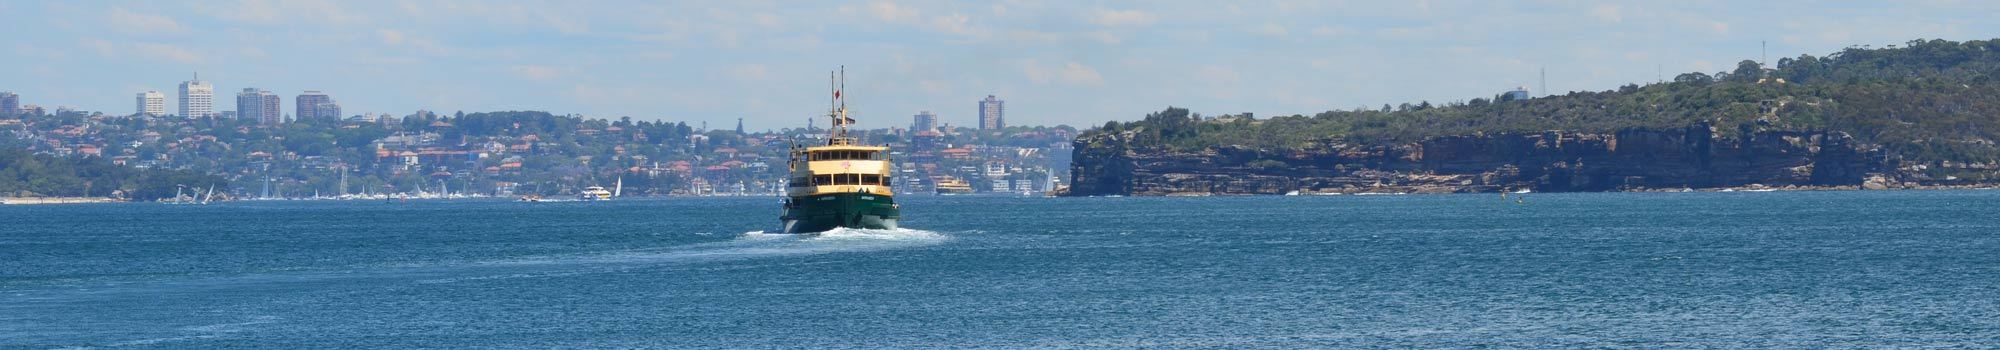 Manly Ferry Information - Manly & Northern Beaches Australia